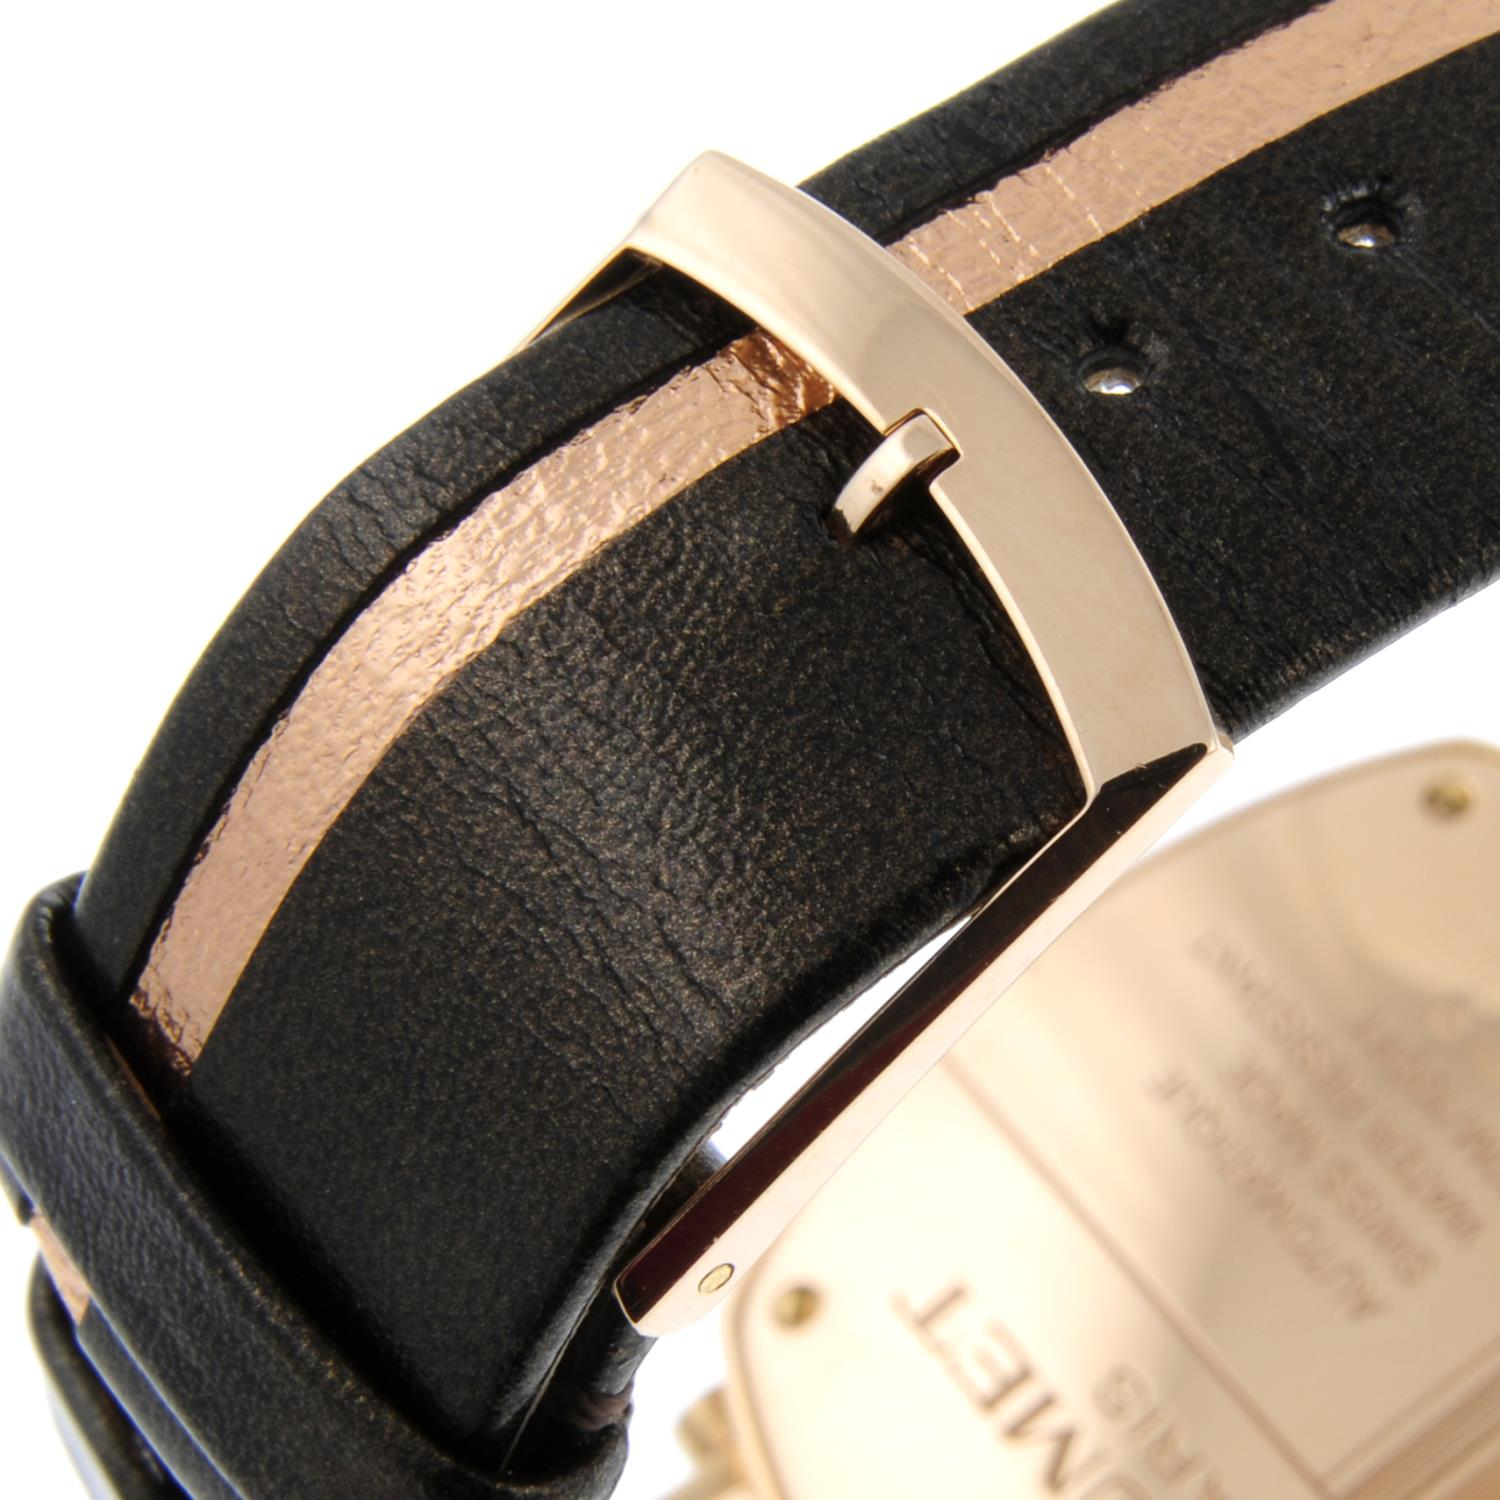 CHAUMET - a Miss Dandy wrist watch. - Image 2 of 5